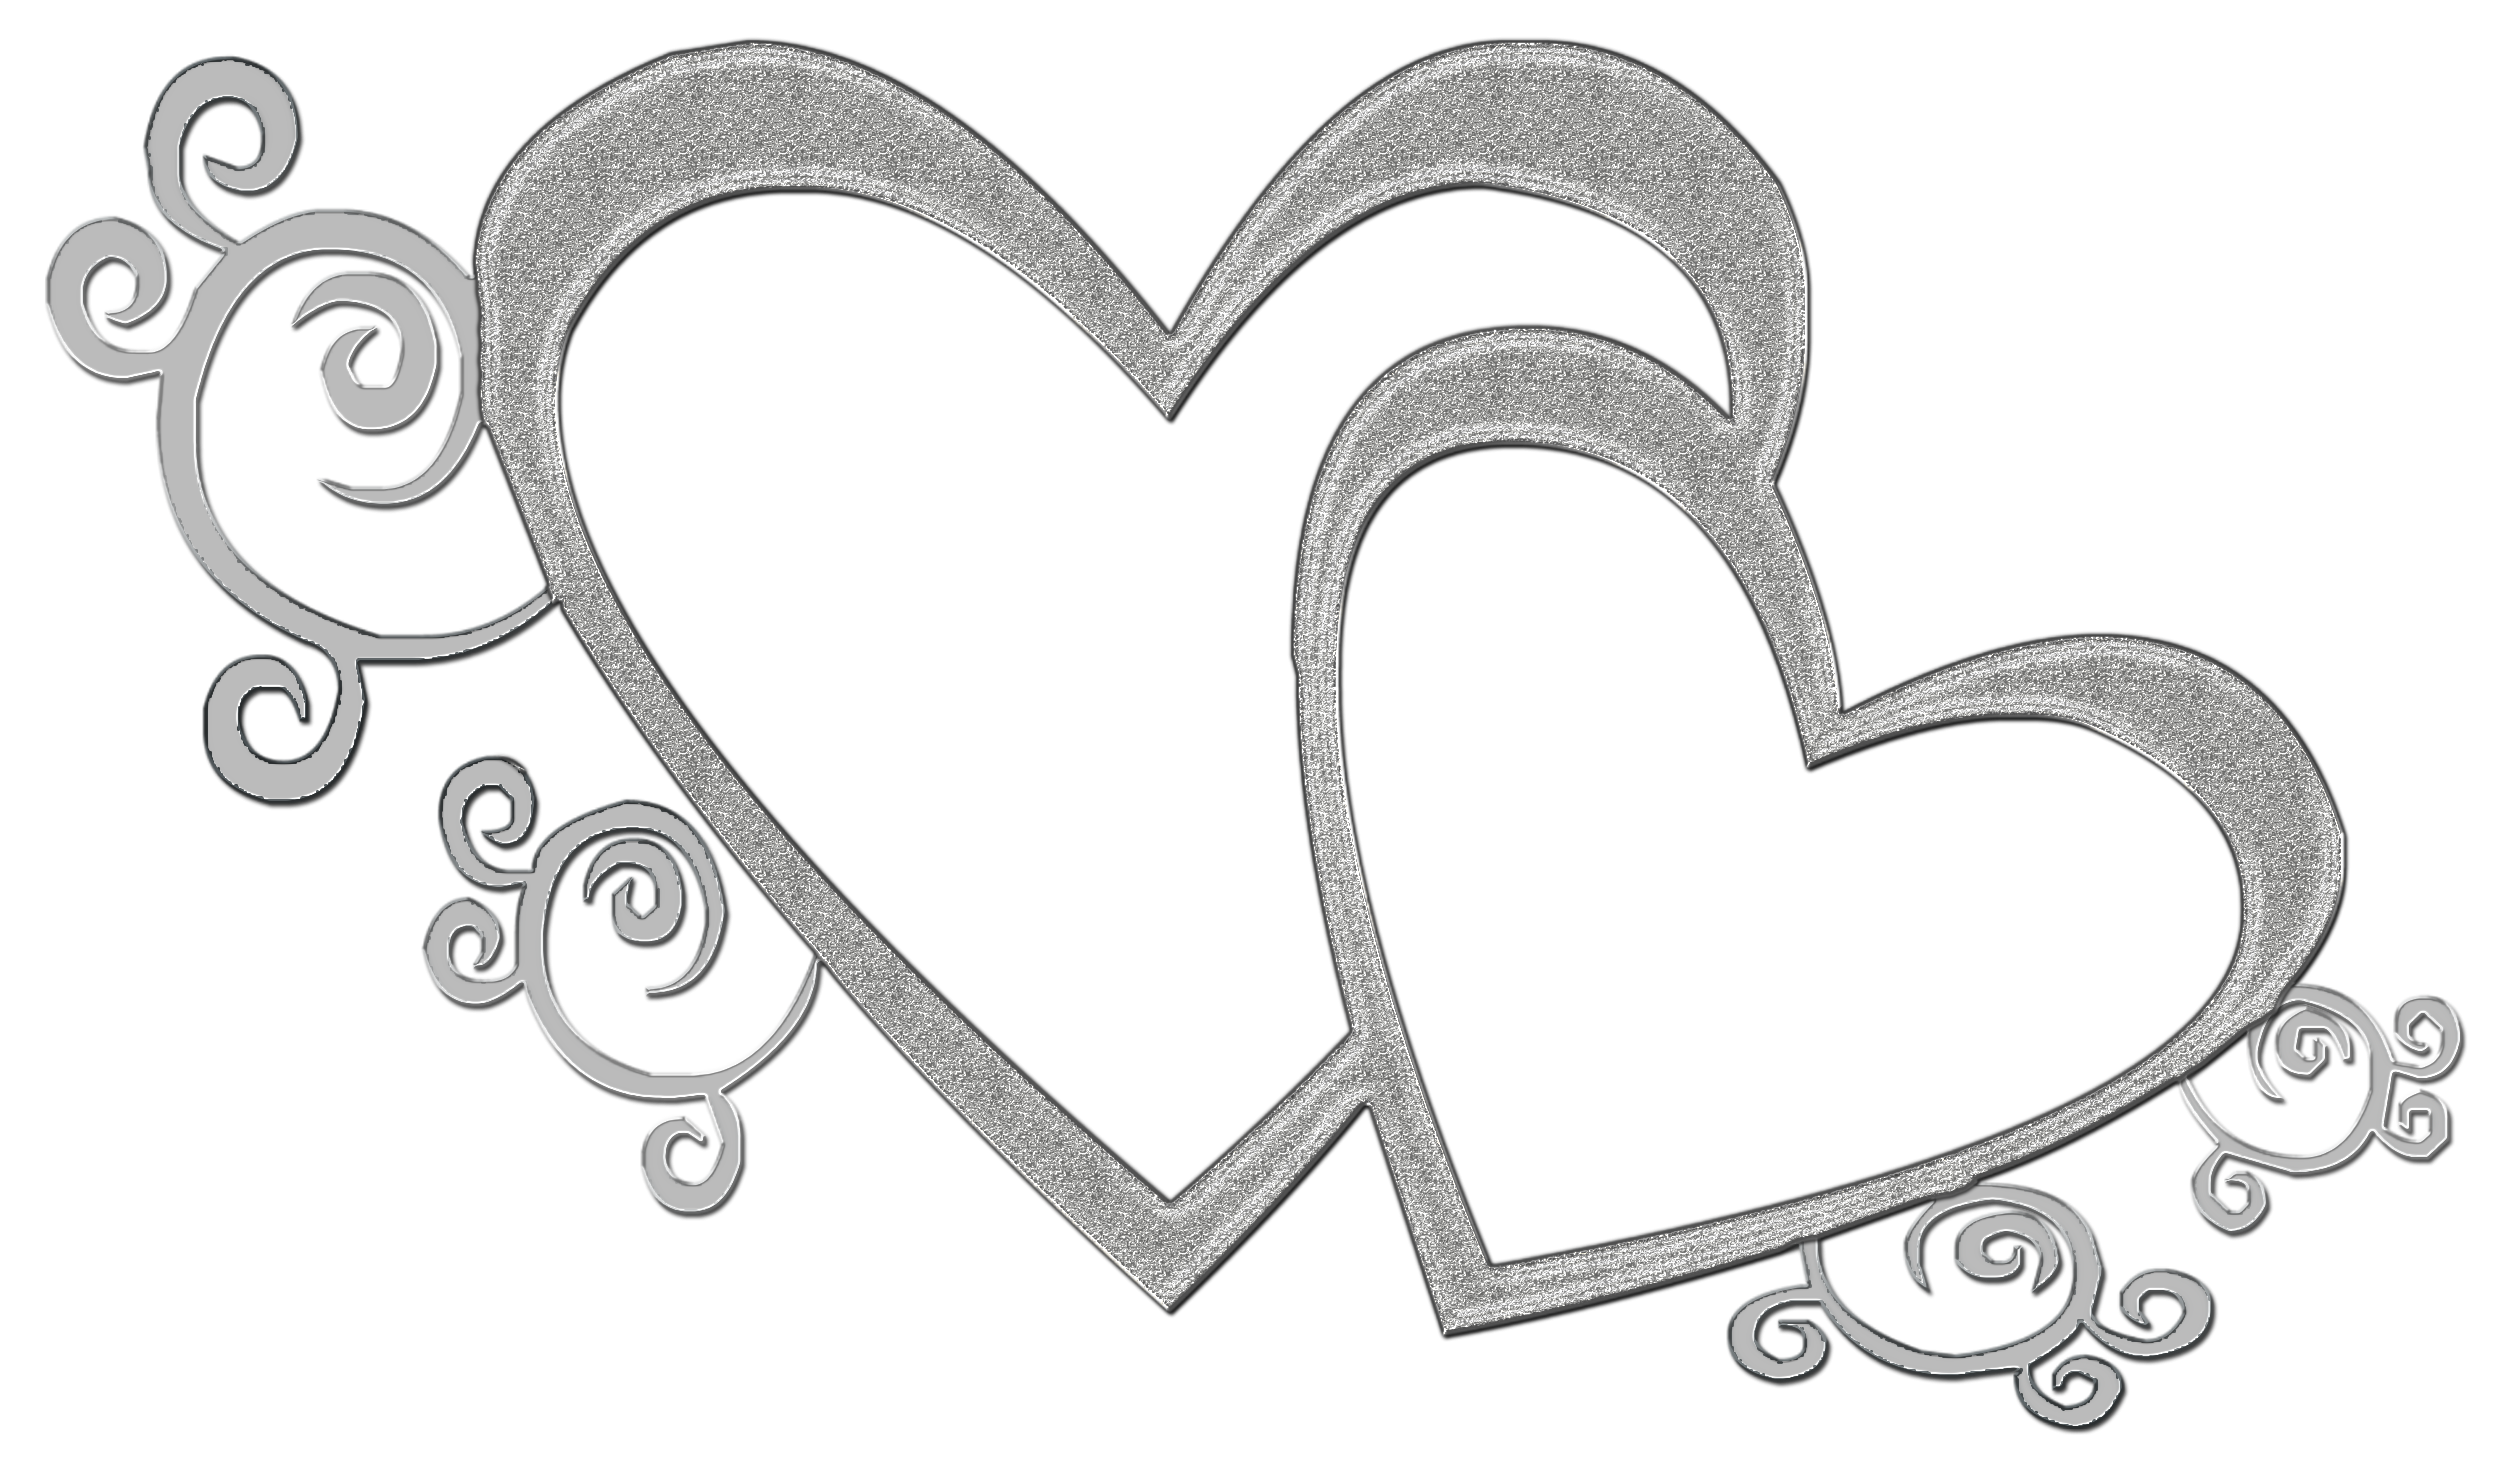 Two Hearts Overlap Clip Art.